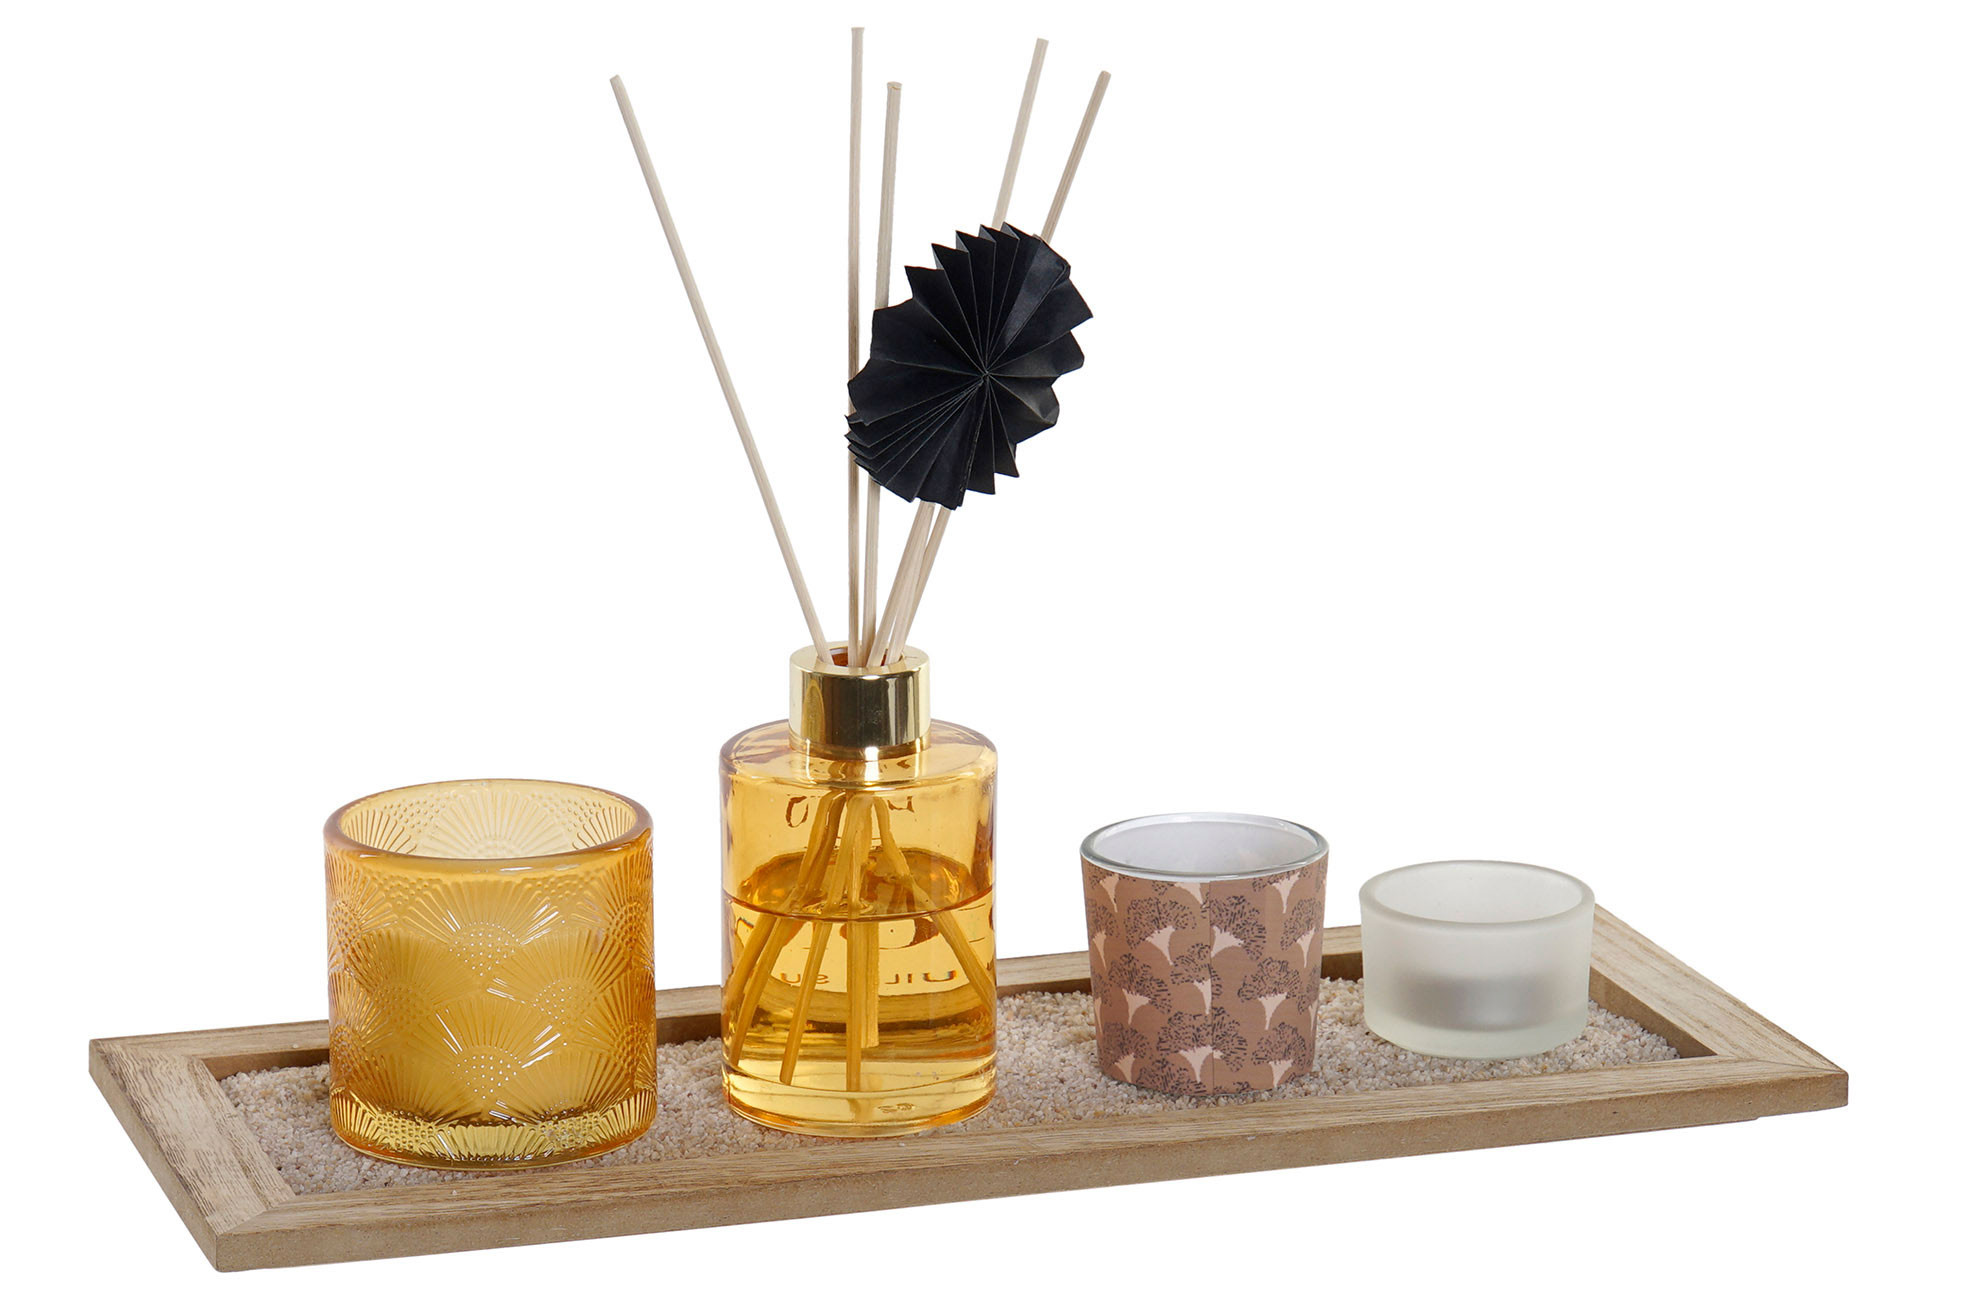 Aroma diffuser Rods 80ml + 3 Candles, Aromatic Wax + Wooden Supports 37,5X9X15cm